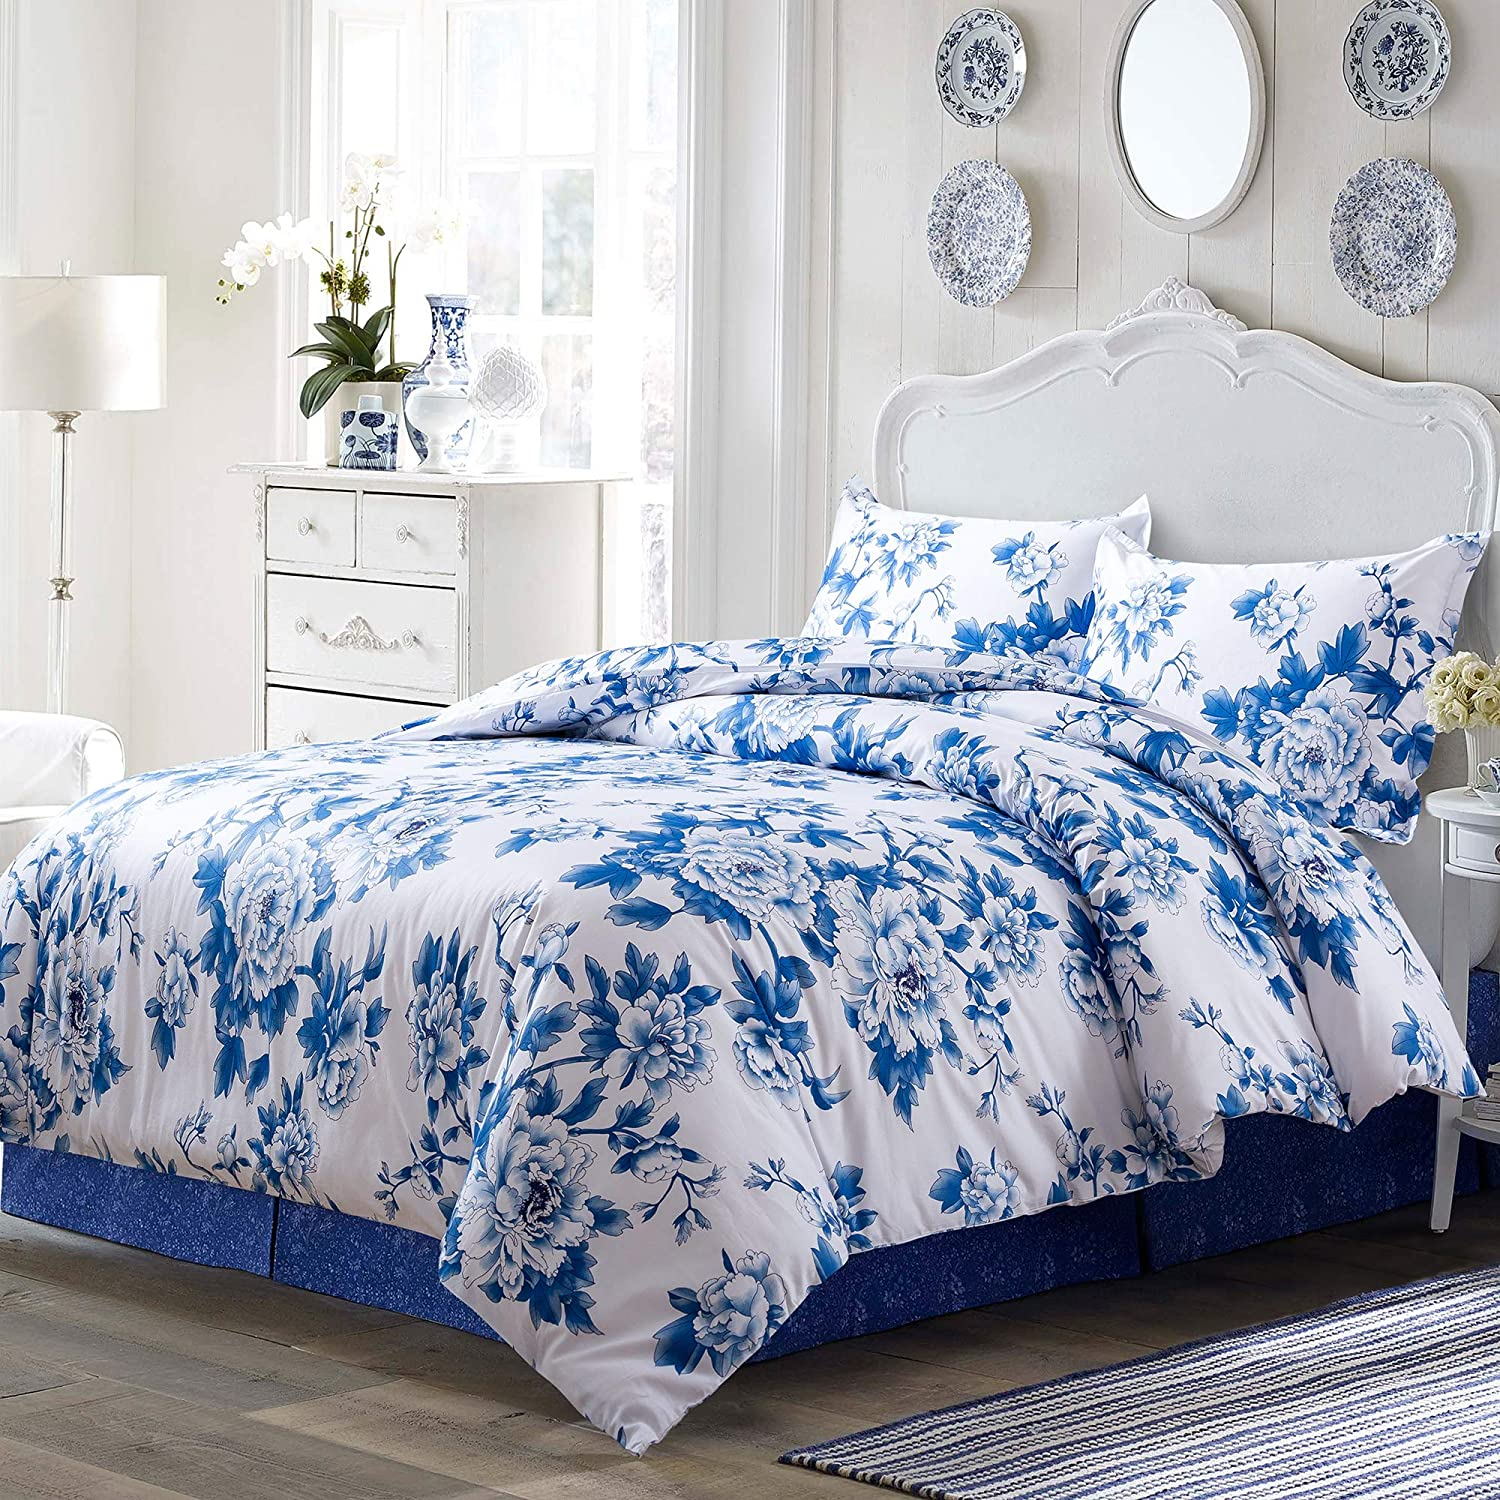 Eikei Shabby Chic Floral Duvet Cover and Pillowcases Set Cottage Garden Botanical Nature Flowers Cabbage Roses Peony Rosy Vines Farmhouse Bedding French Country Style (Porcelain Blue, Queen)